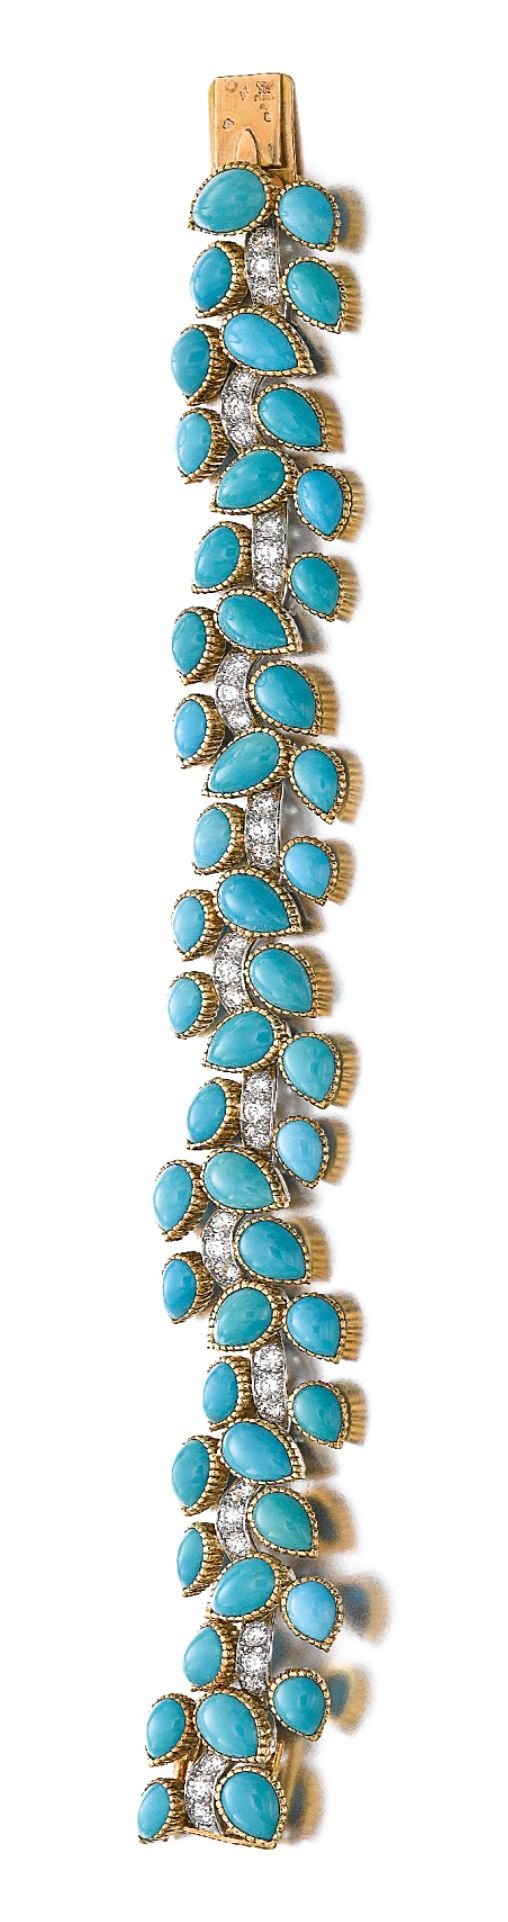 TURQUOISE AND DIAMOND BRACELET, CARTIER, 1962 Designed as a vine composed of brilliant-cut diamonds, accented with cabochon turquoise, length approximately 180mm, signed Cartier, numbered, French assay and maker's marks, case stamped Cartier.